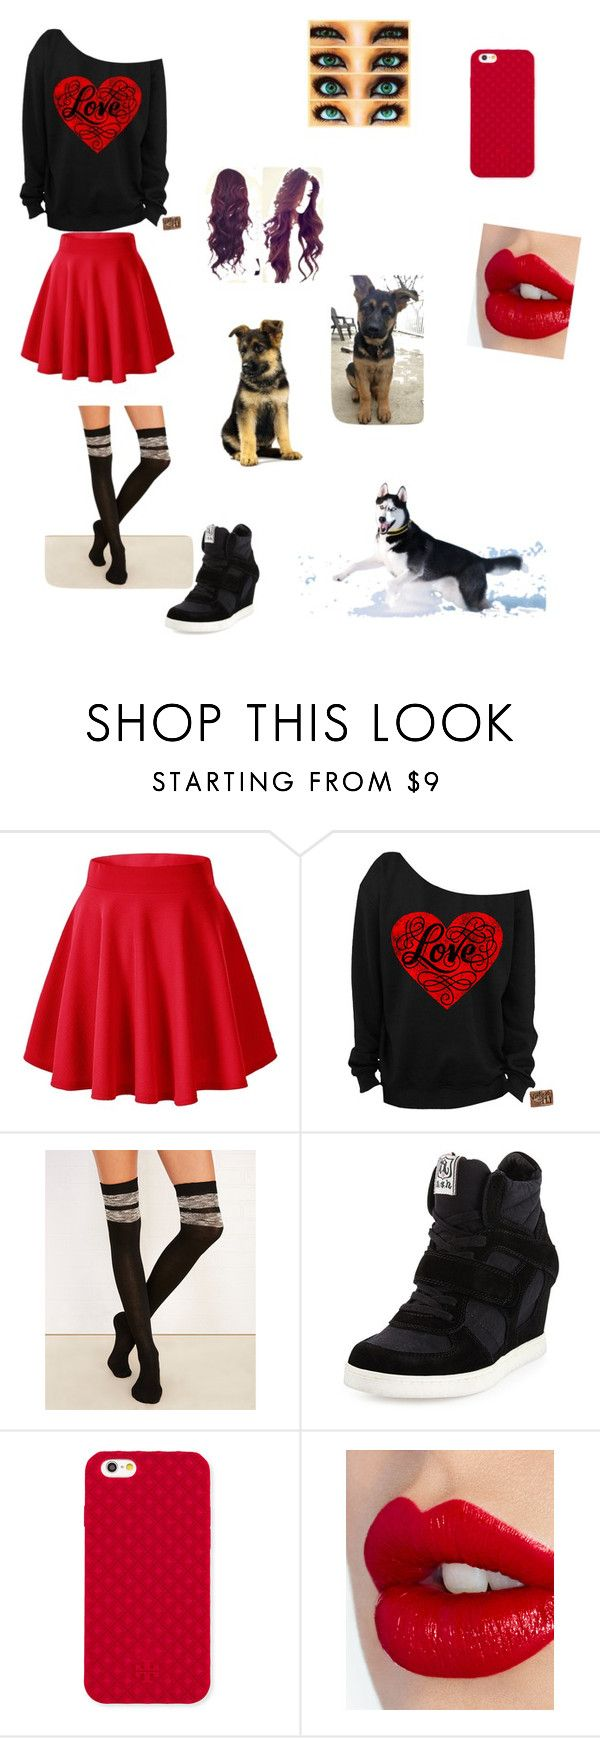 """""""Forever alone on Valentine's Day"""" by mendesmusicforever ❤ liked on Polyvore featuring Wet Seal, Ash, Tory Burch and Charlotte Tilbury"""